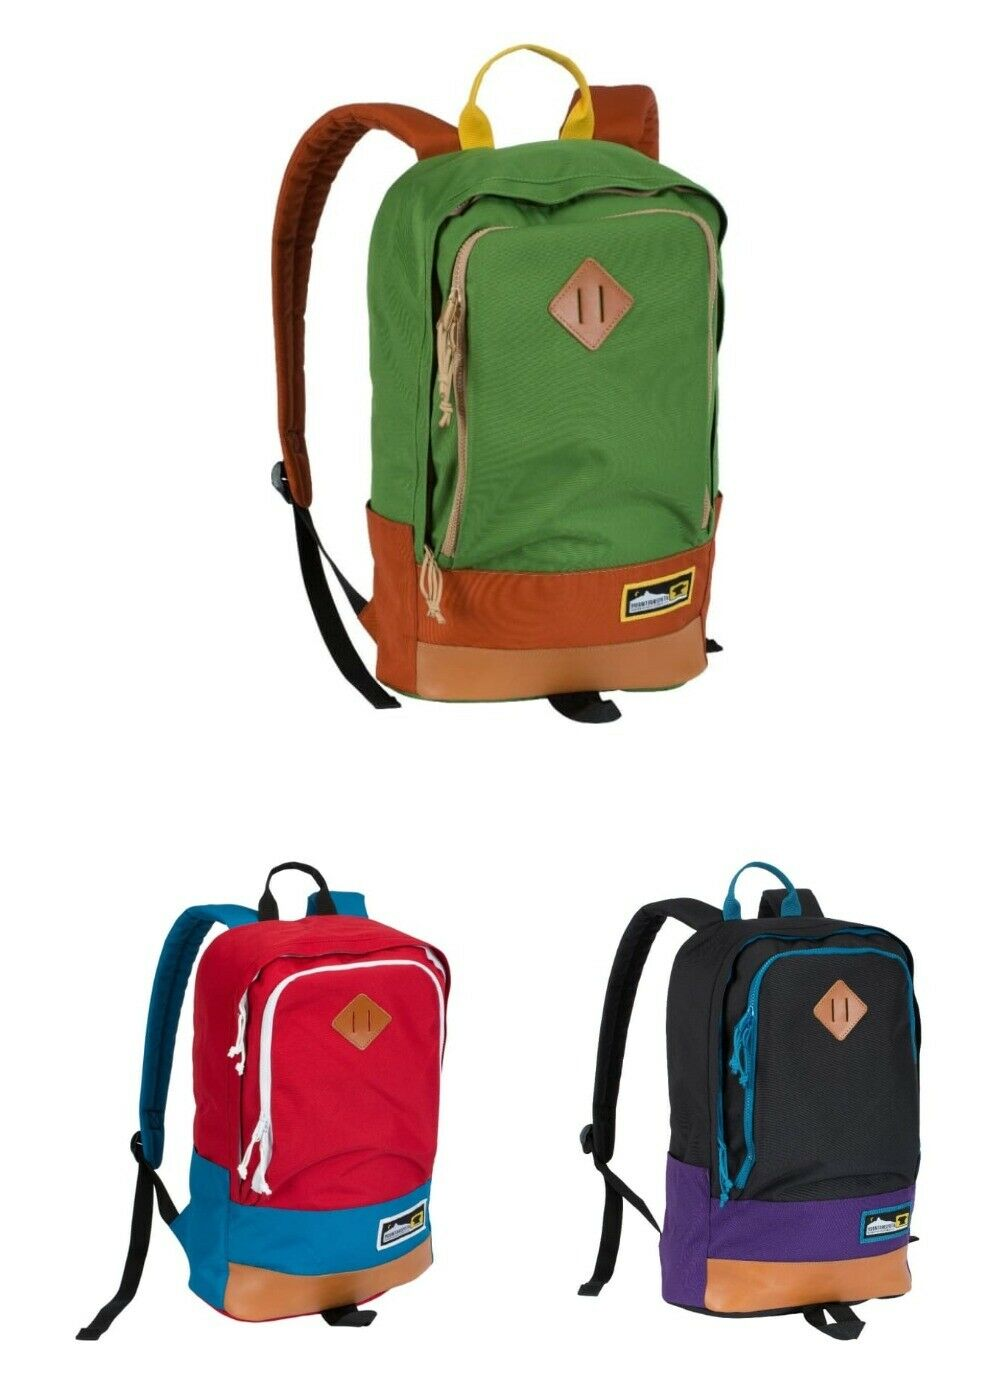 Mountainsmith Trippin Pack - Various Sizes and Colors